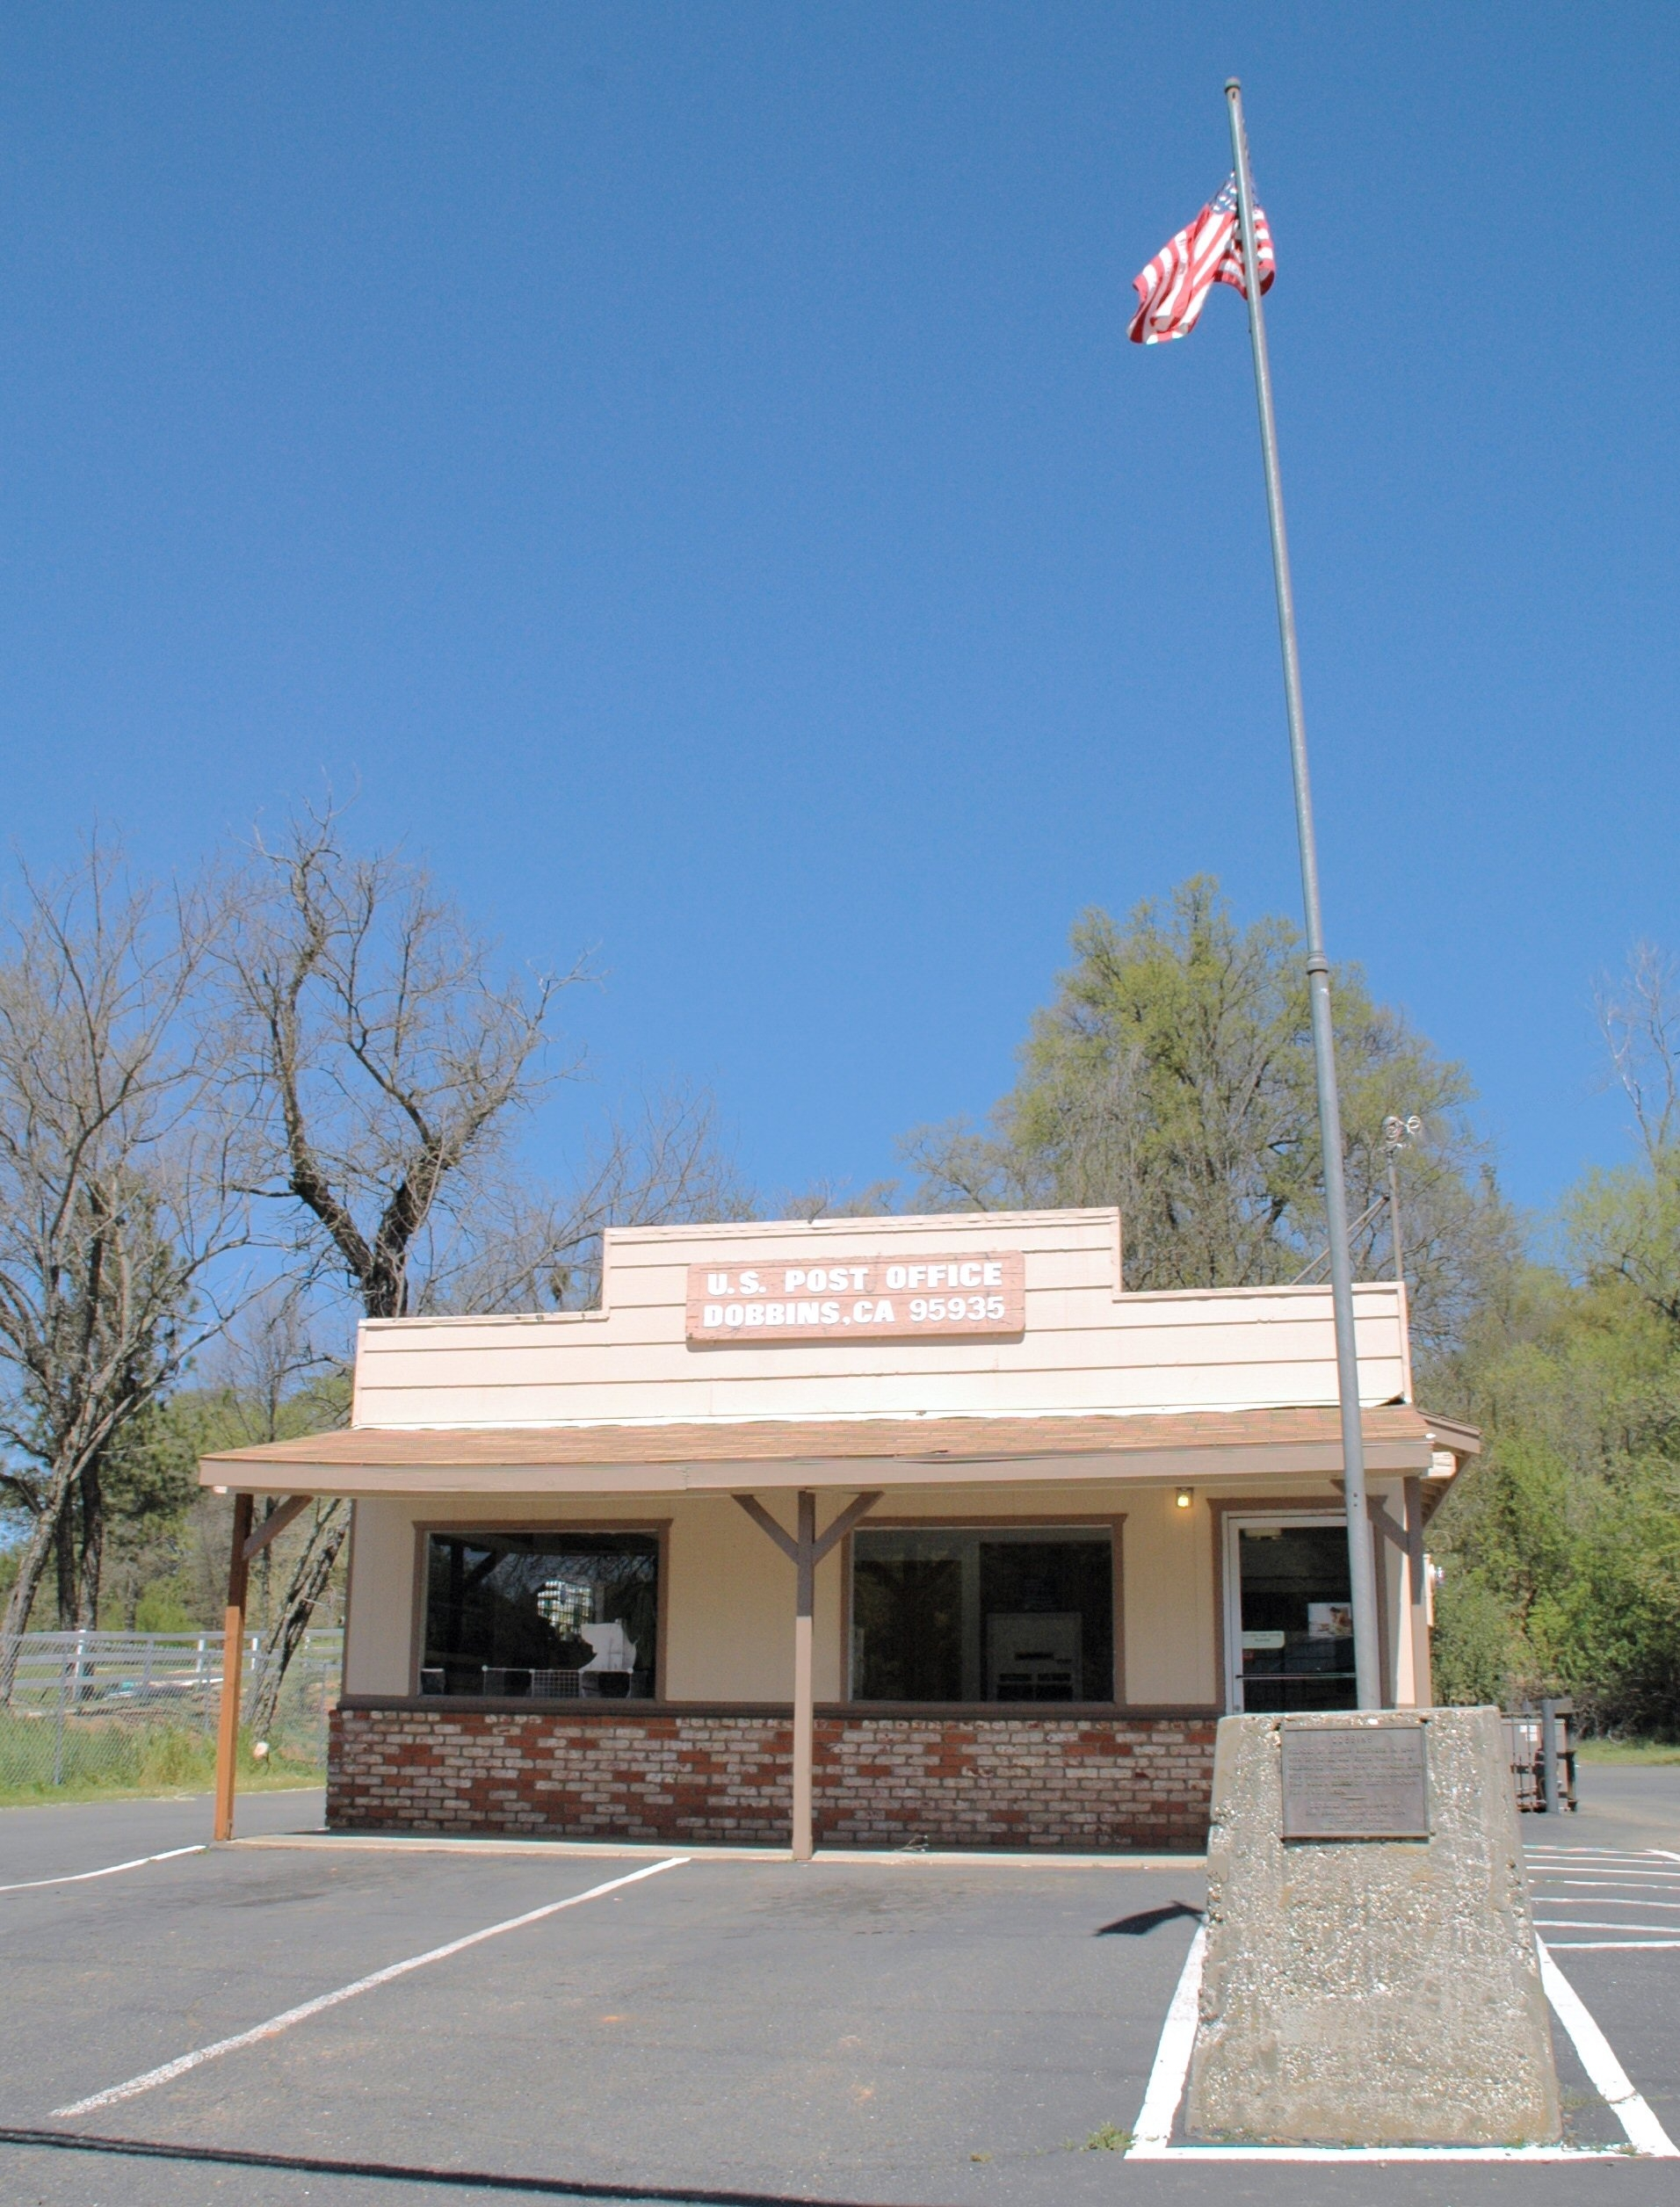 Dobbins Post Office and Marker